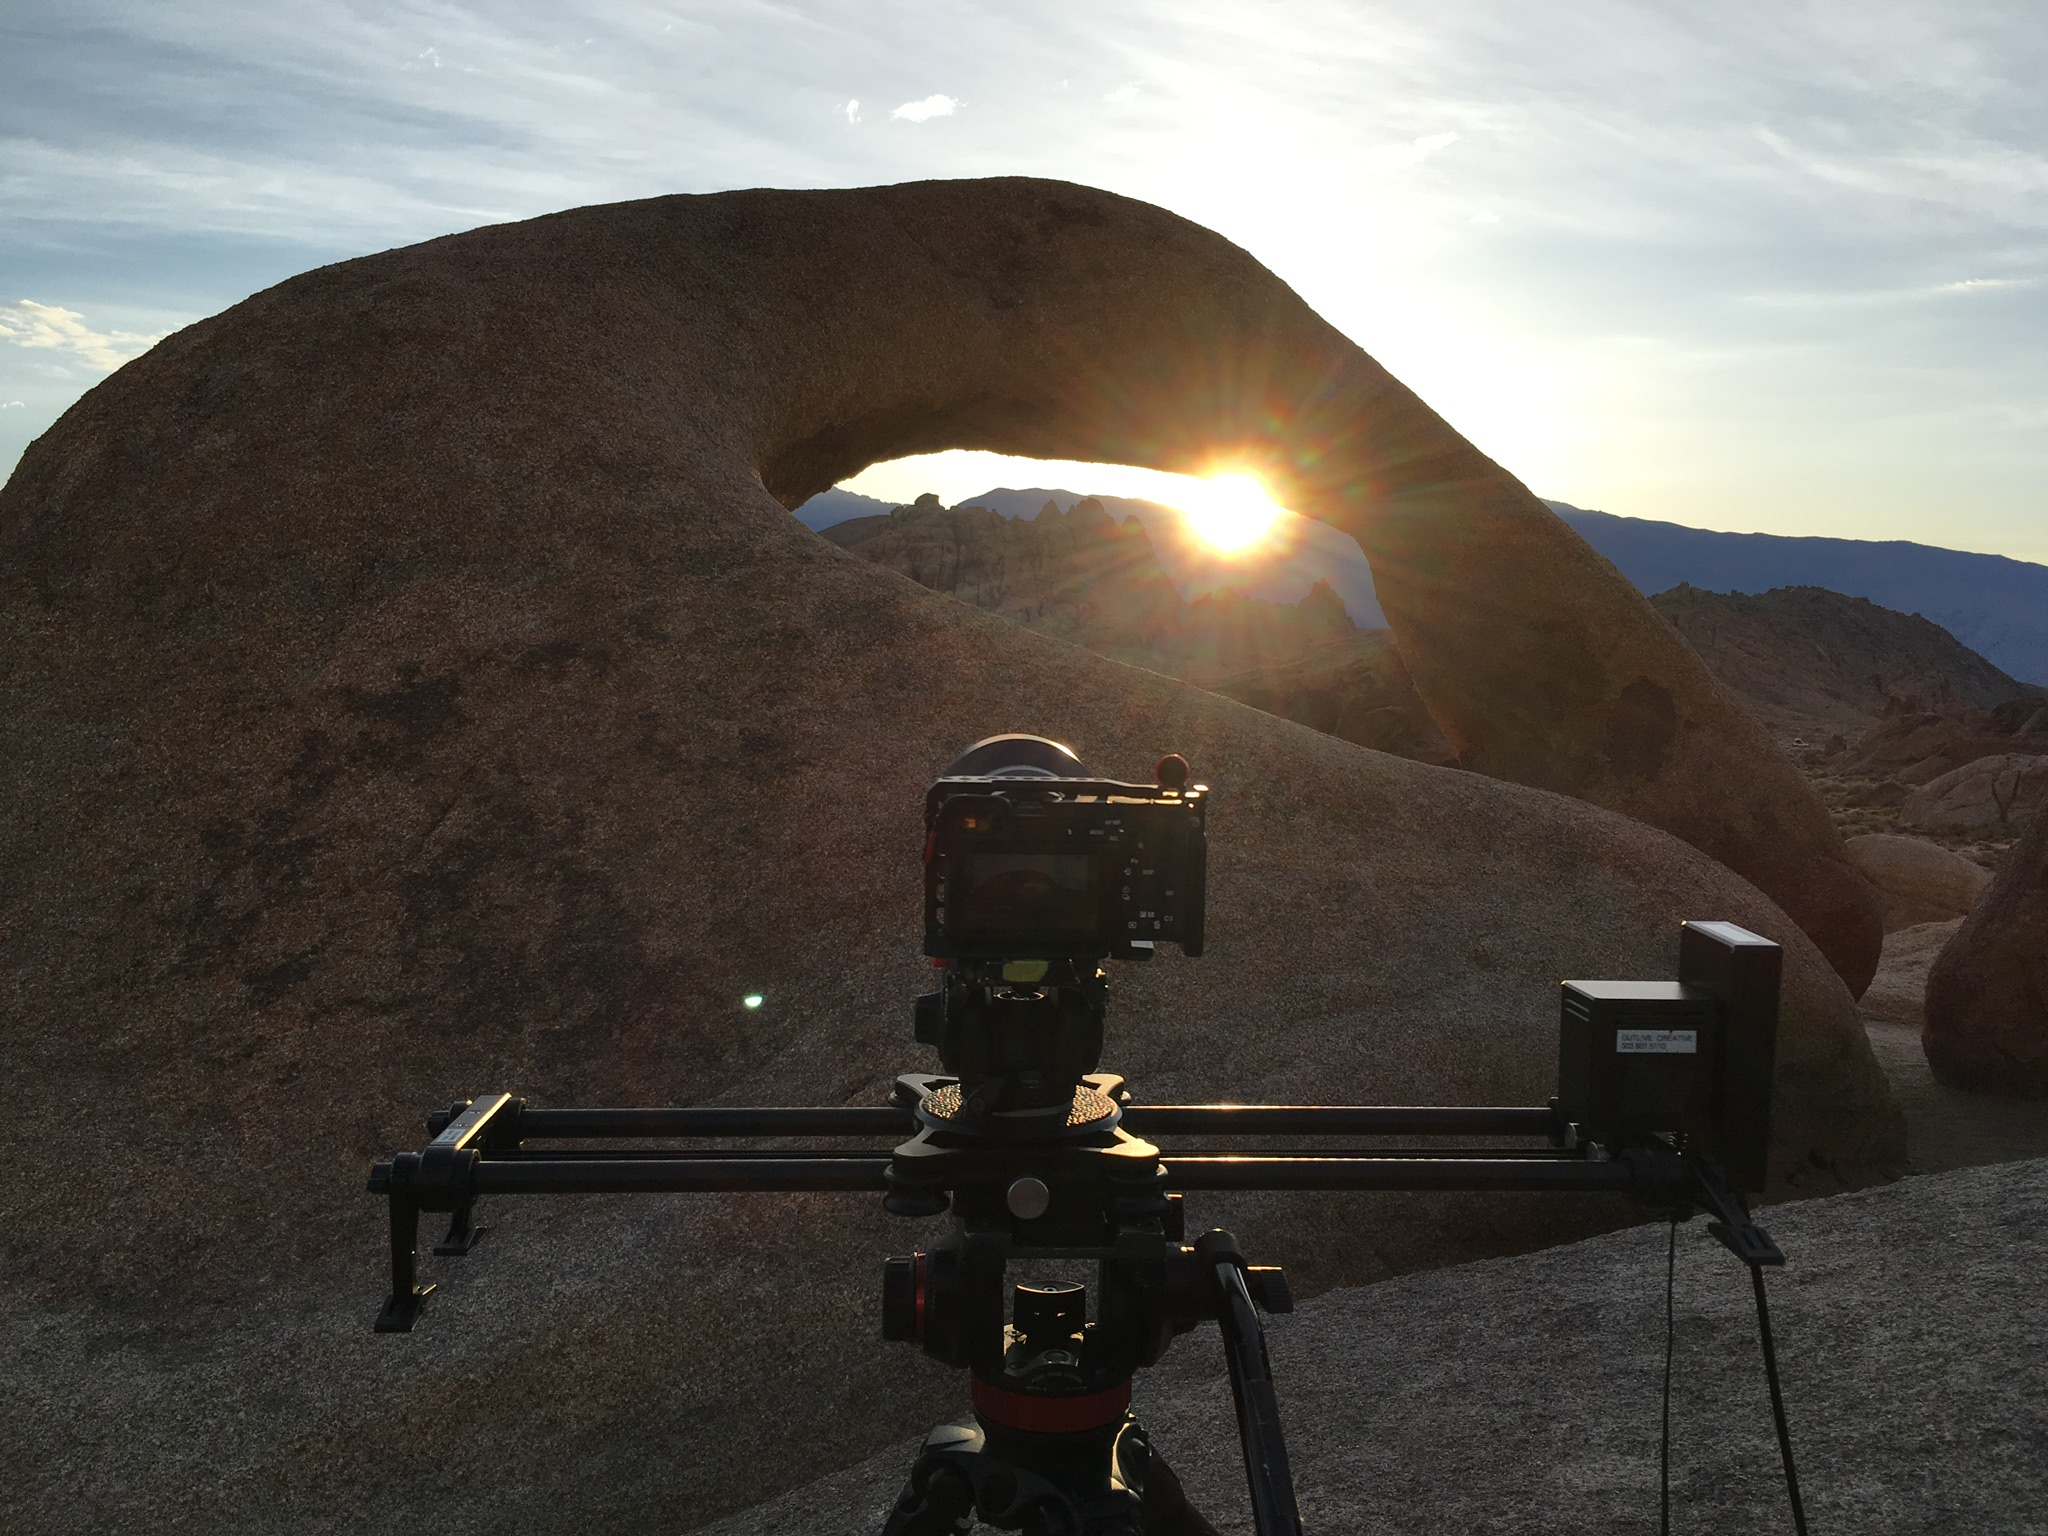 Rhino Slider + Motion Controller = AWESOME!